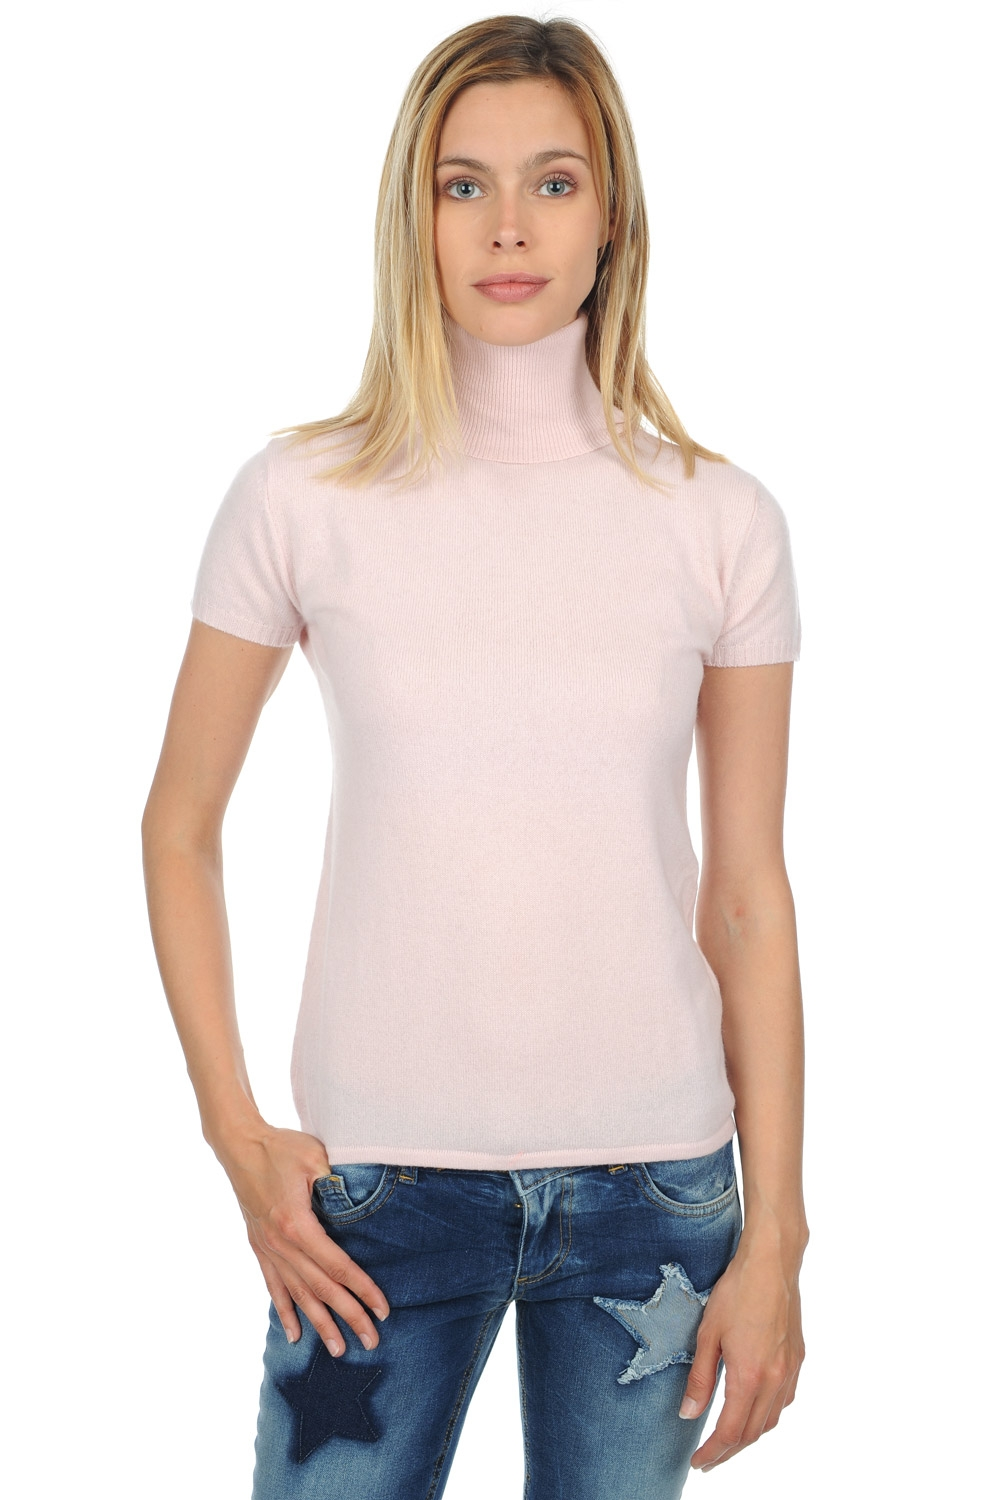 cachemire pull femme col roule olivia rose pale s